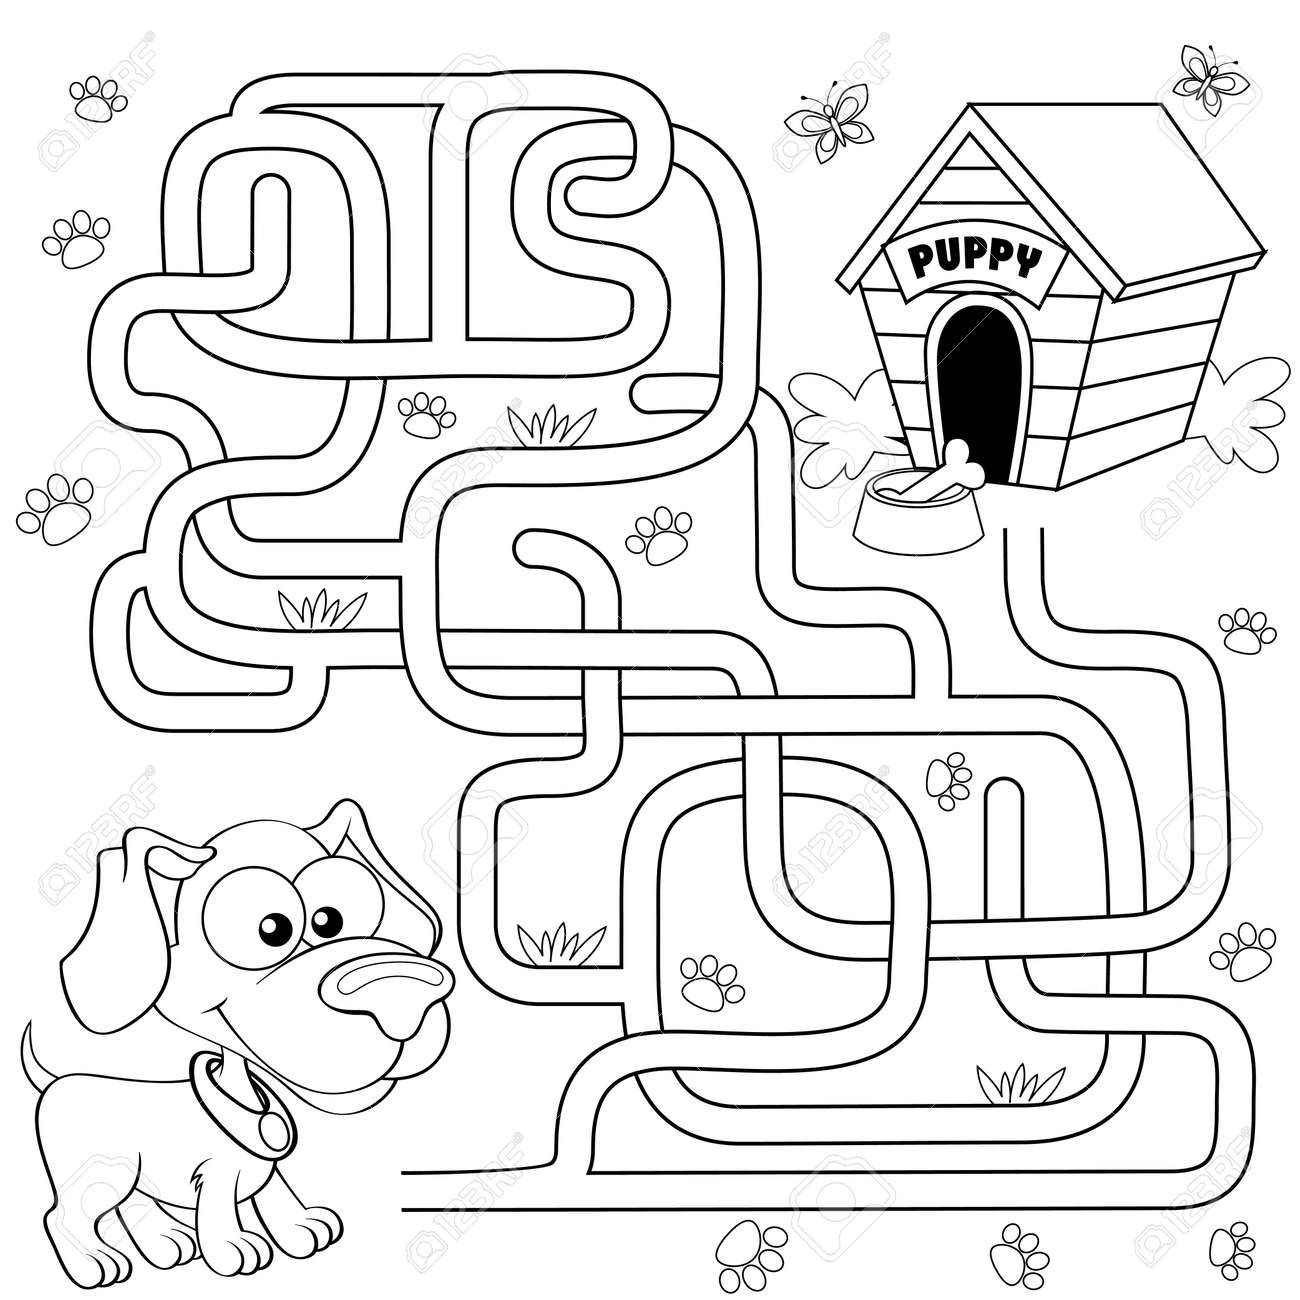 Help puppy find path to his house  Labyrinth  Maze game for kids